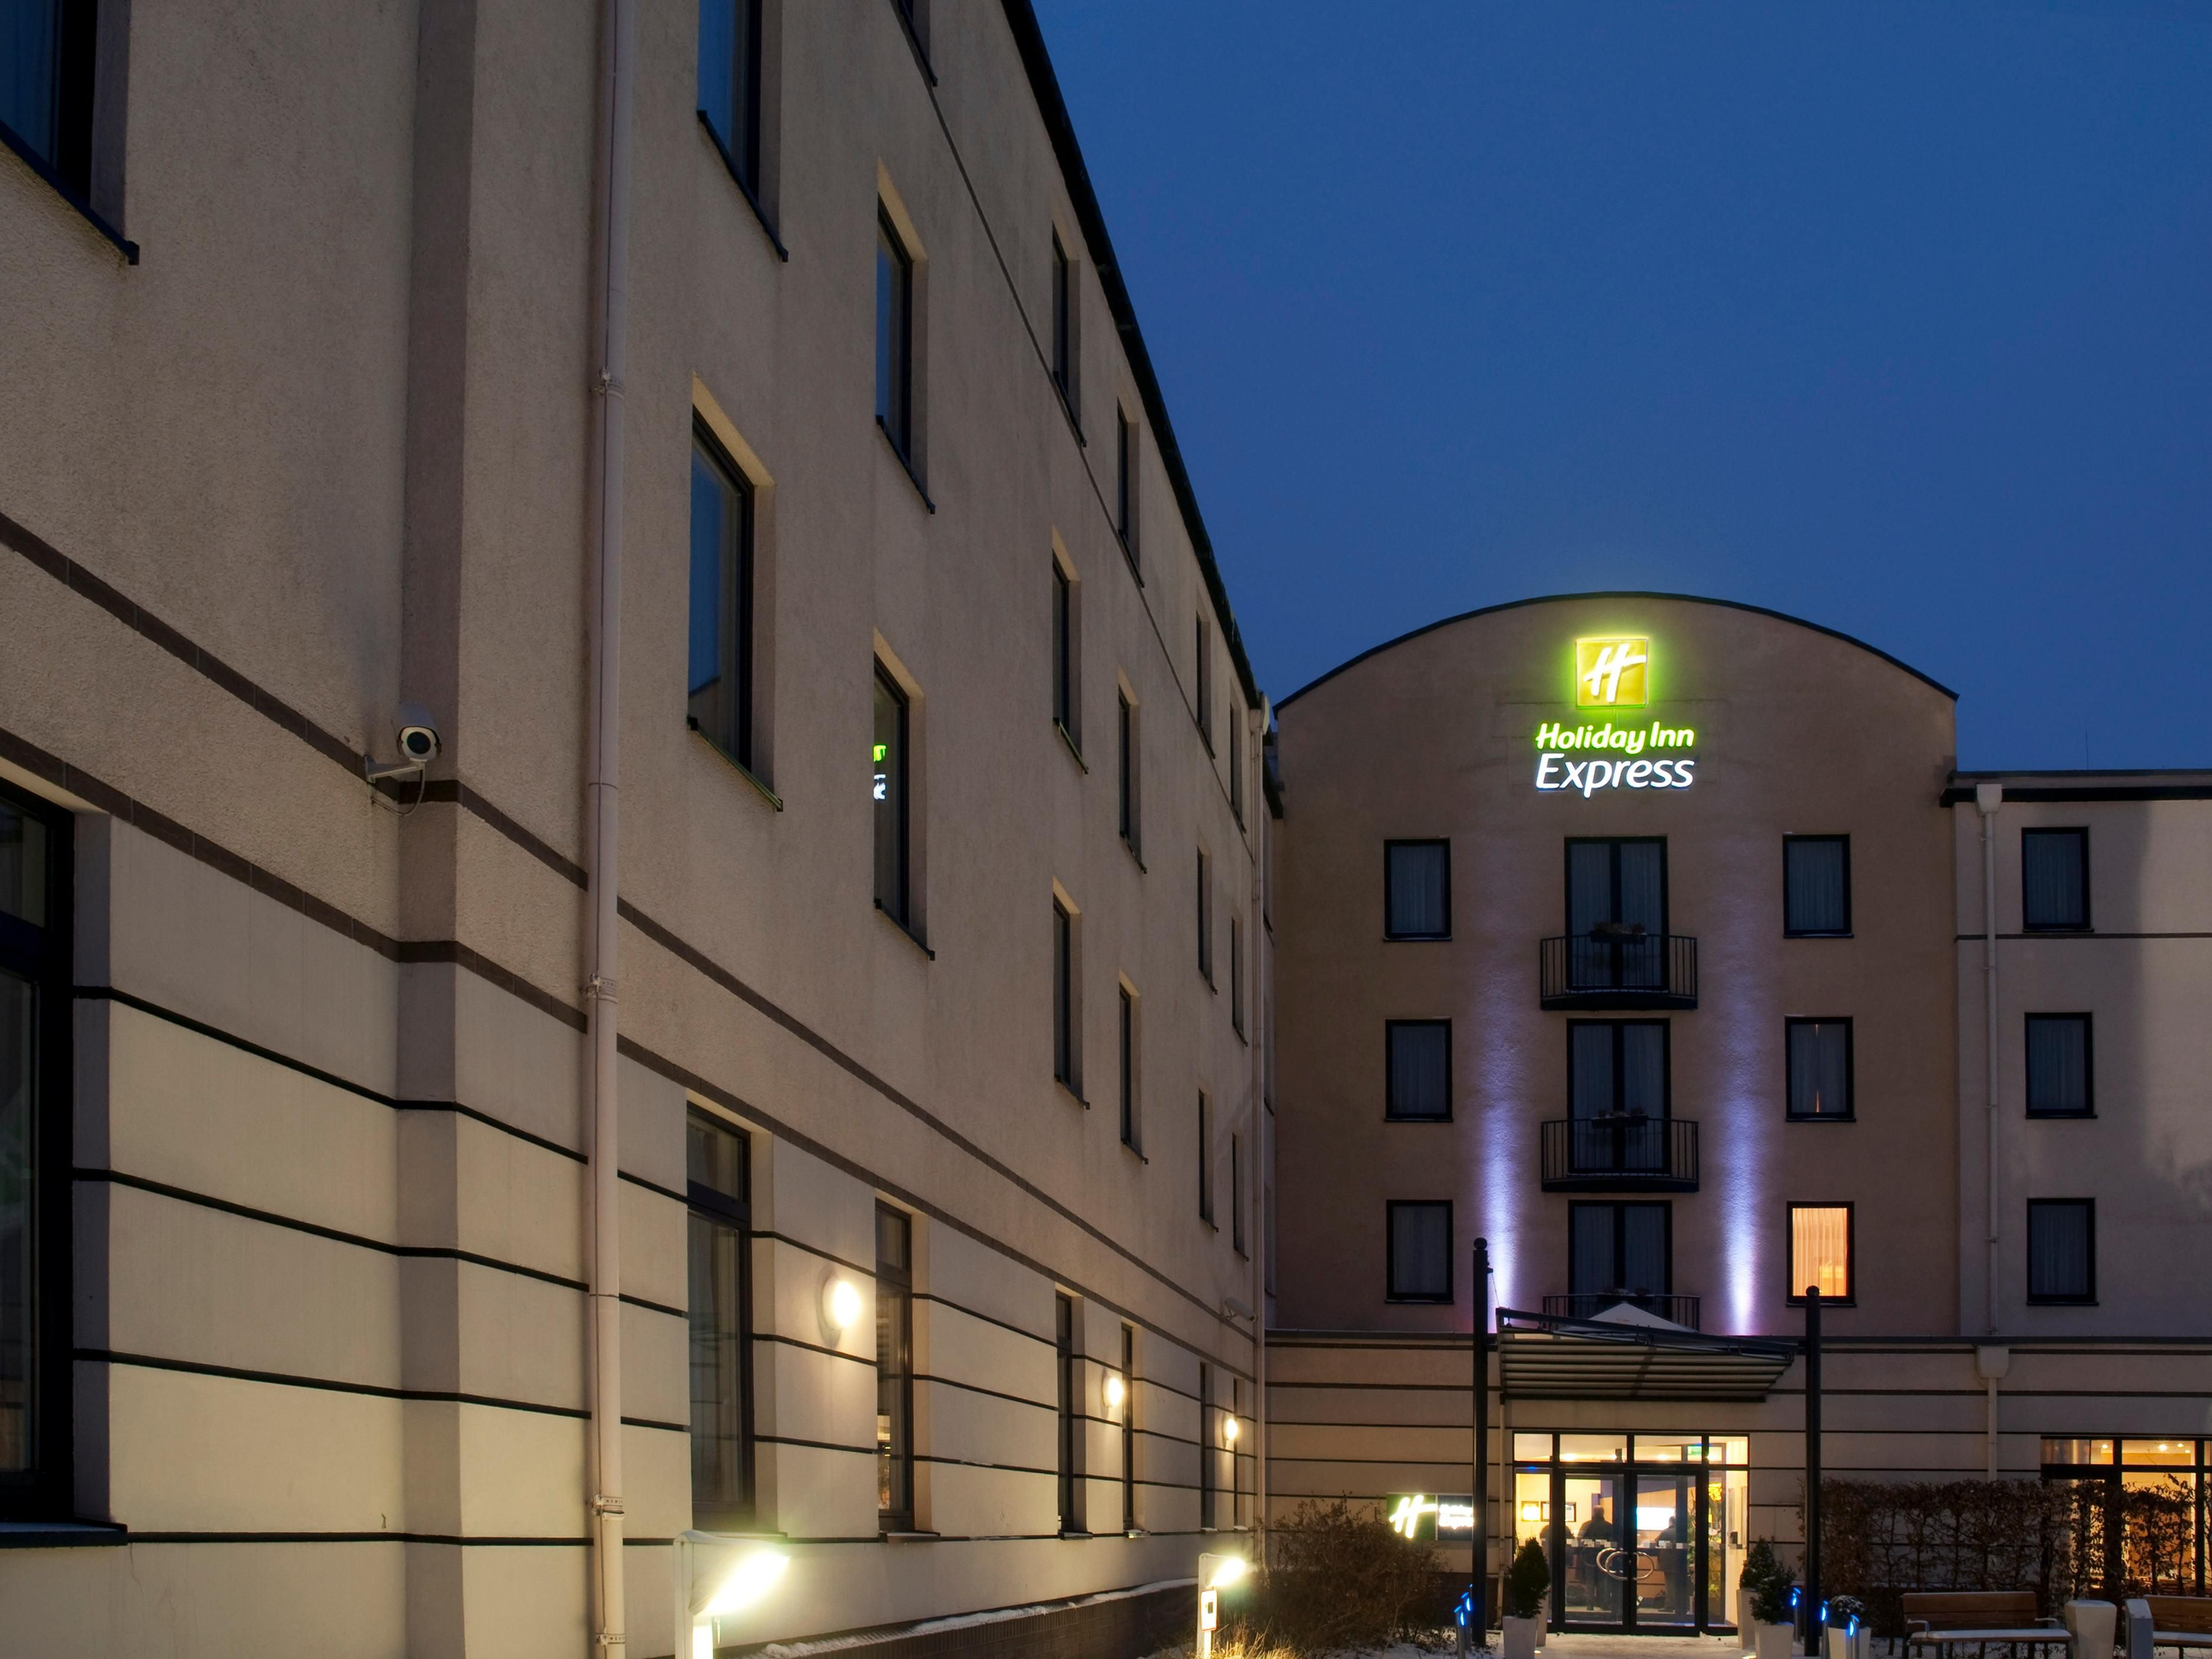 Welcome to Holiday Inn Express Dortmund